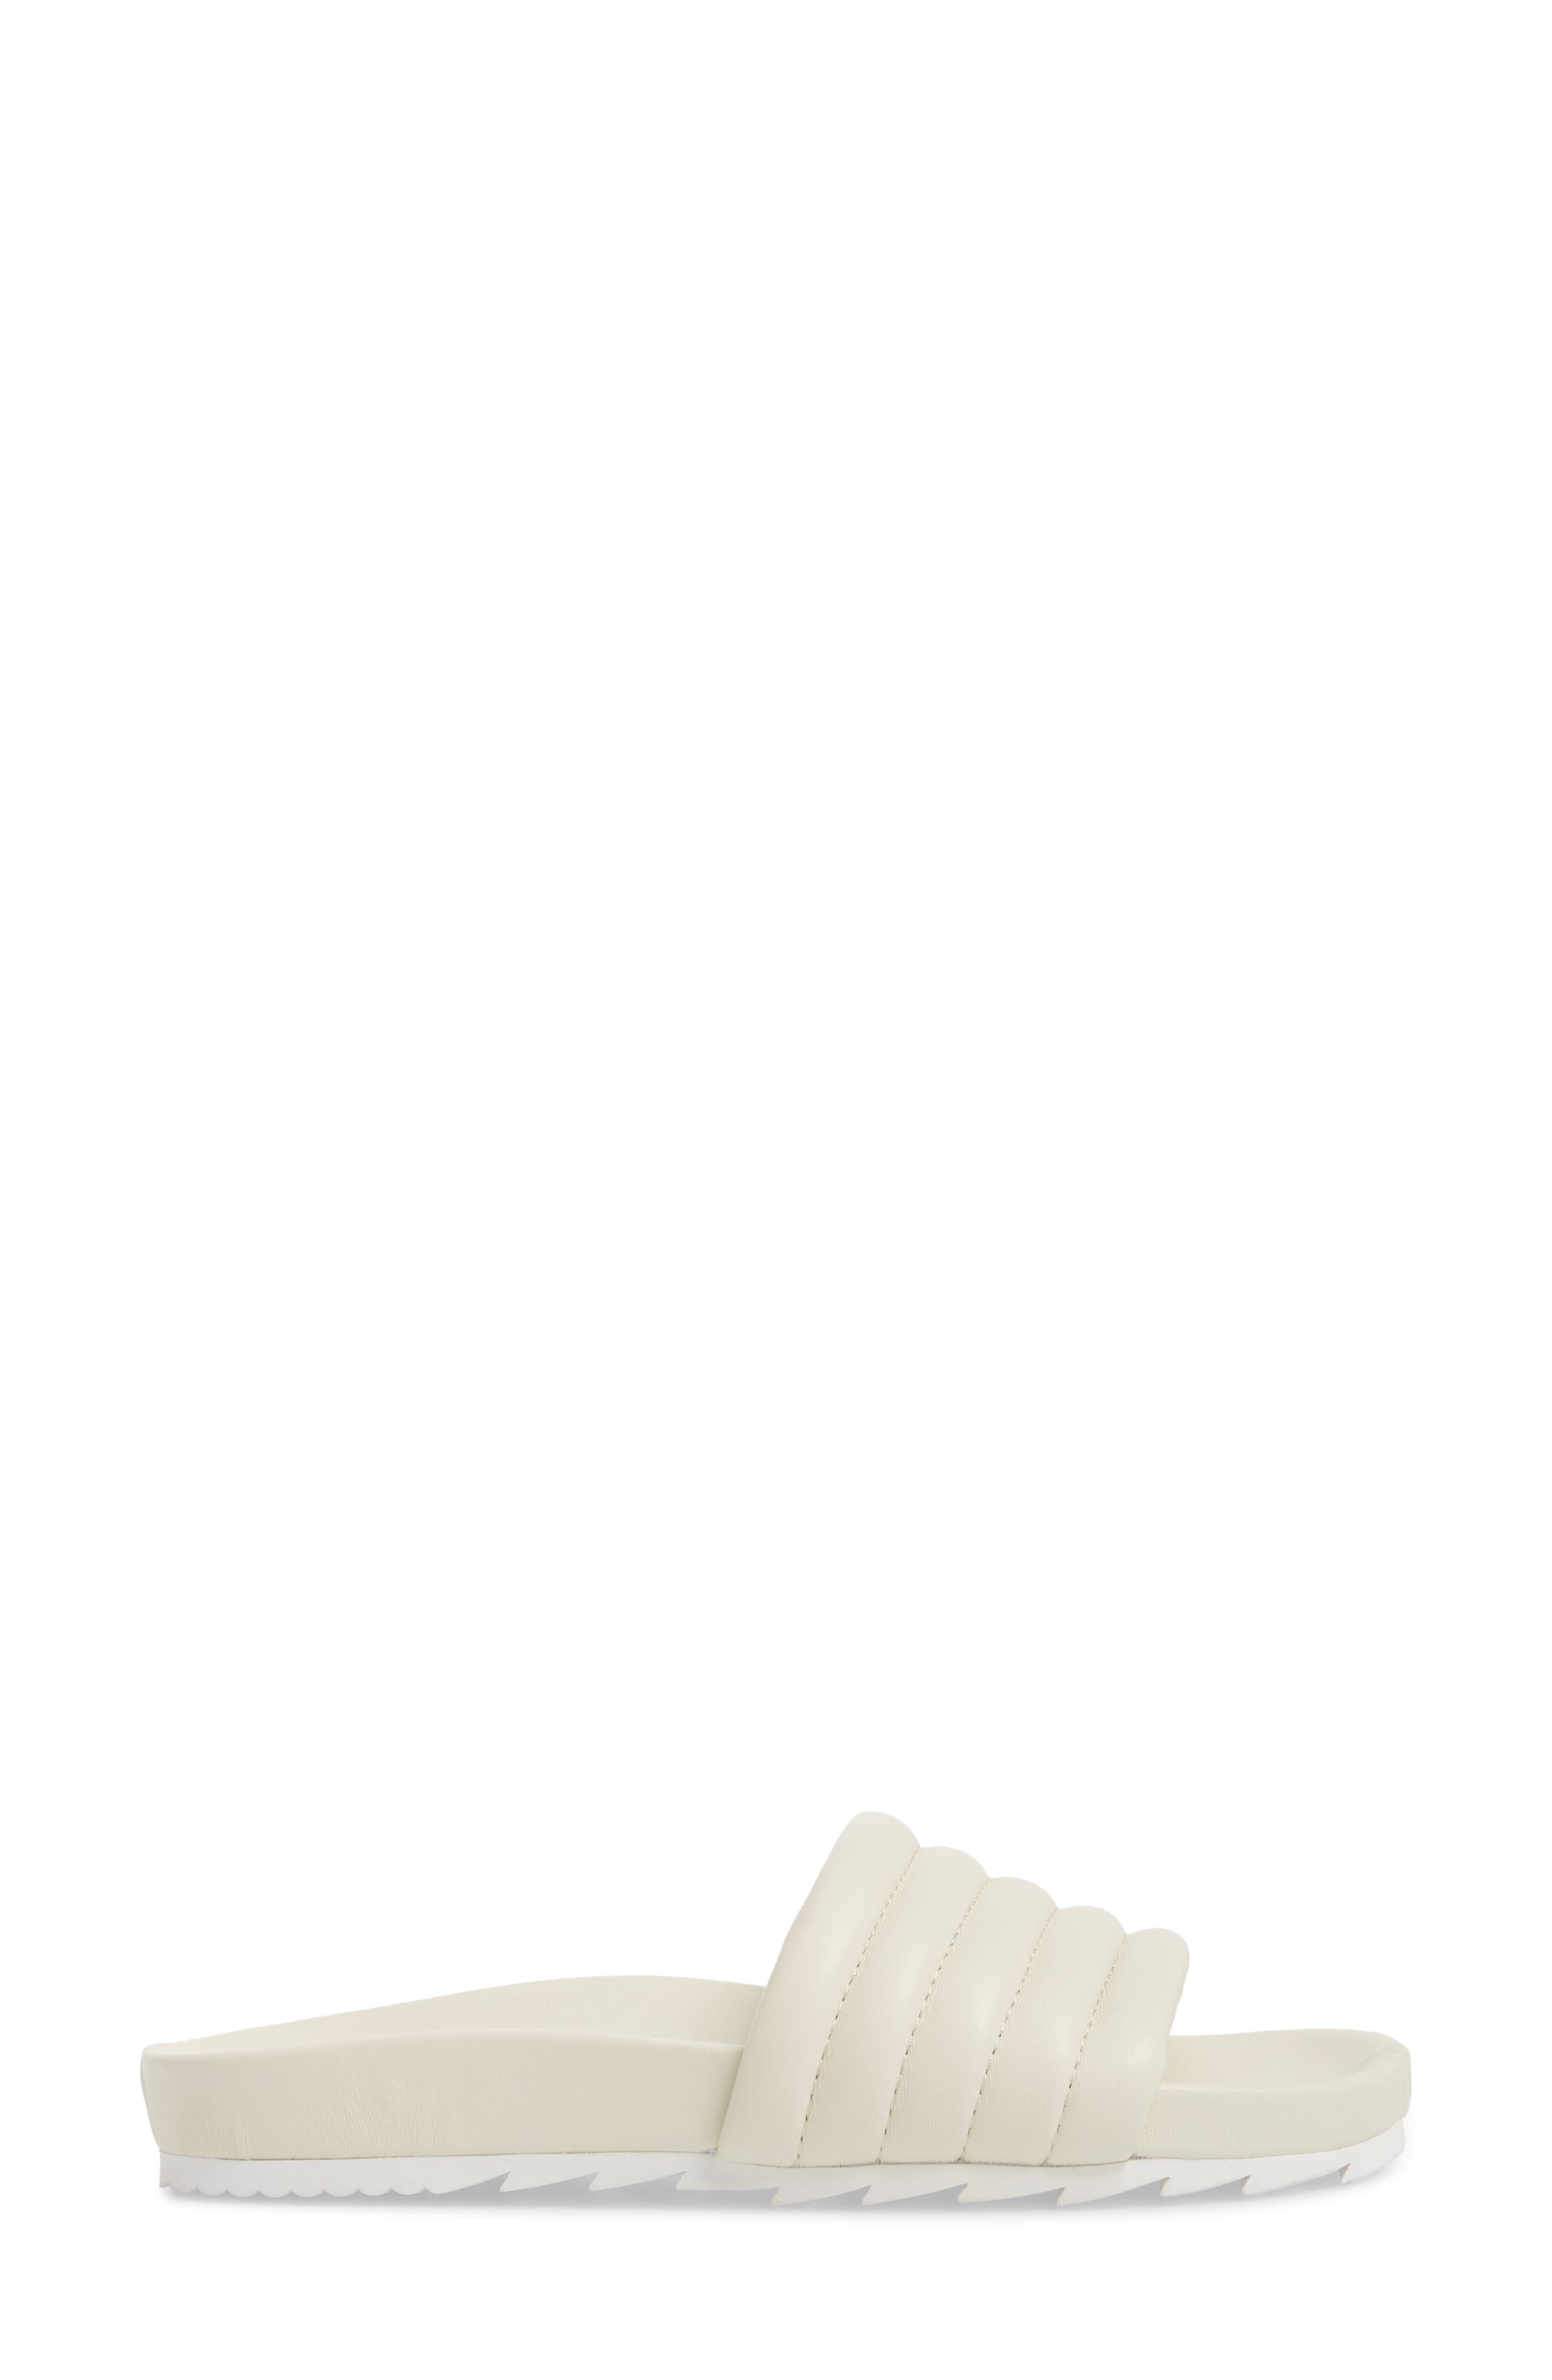 JSLIDES, Eppie Slide Sandal, Alternate thumbnail 3, color, OFF WHITE LEATHER